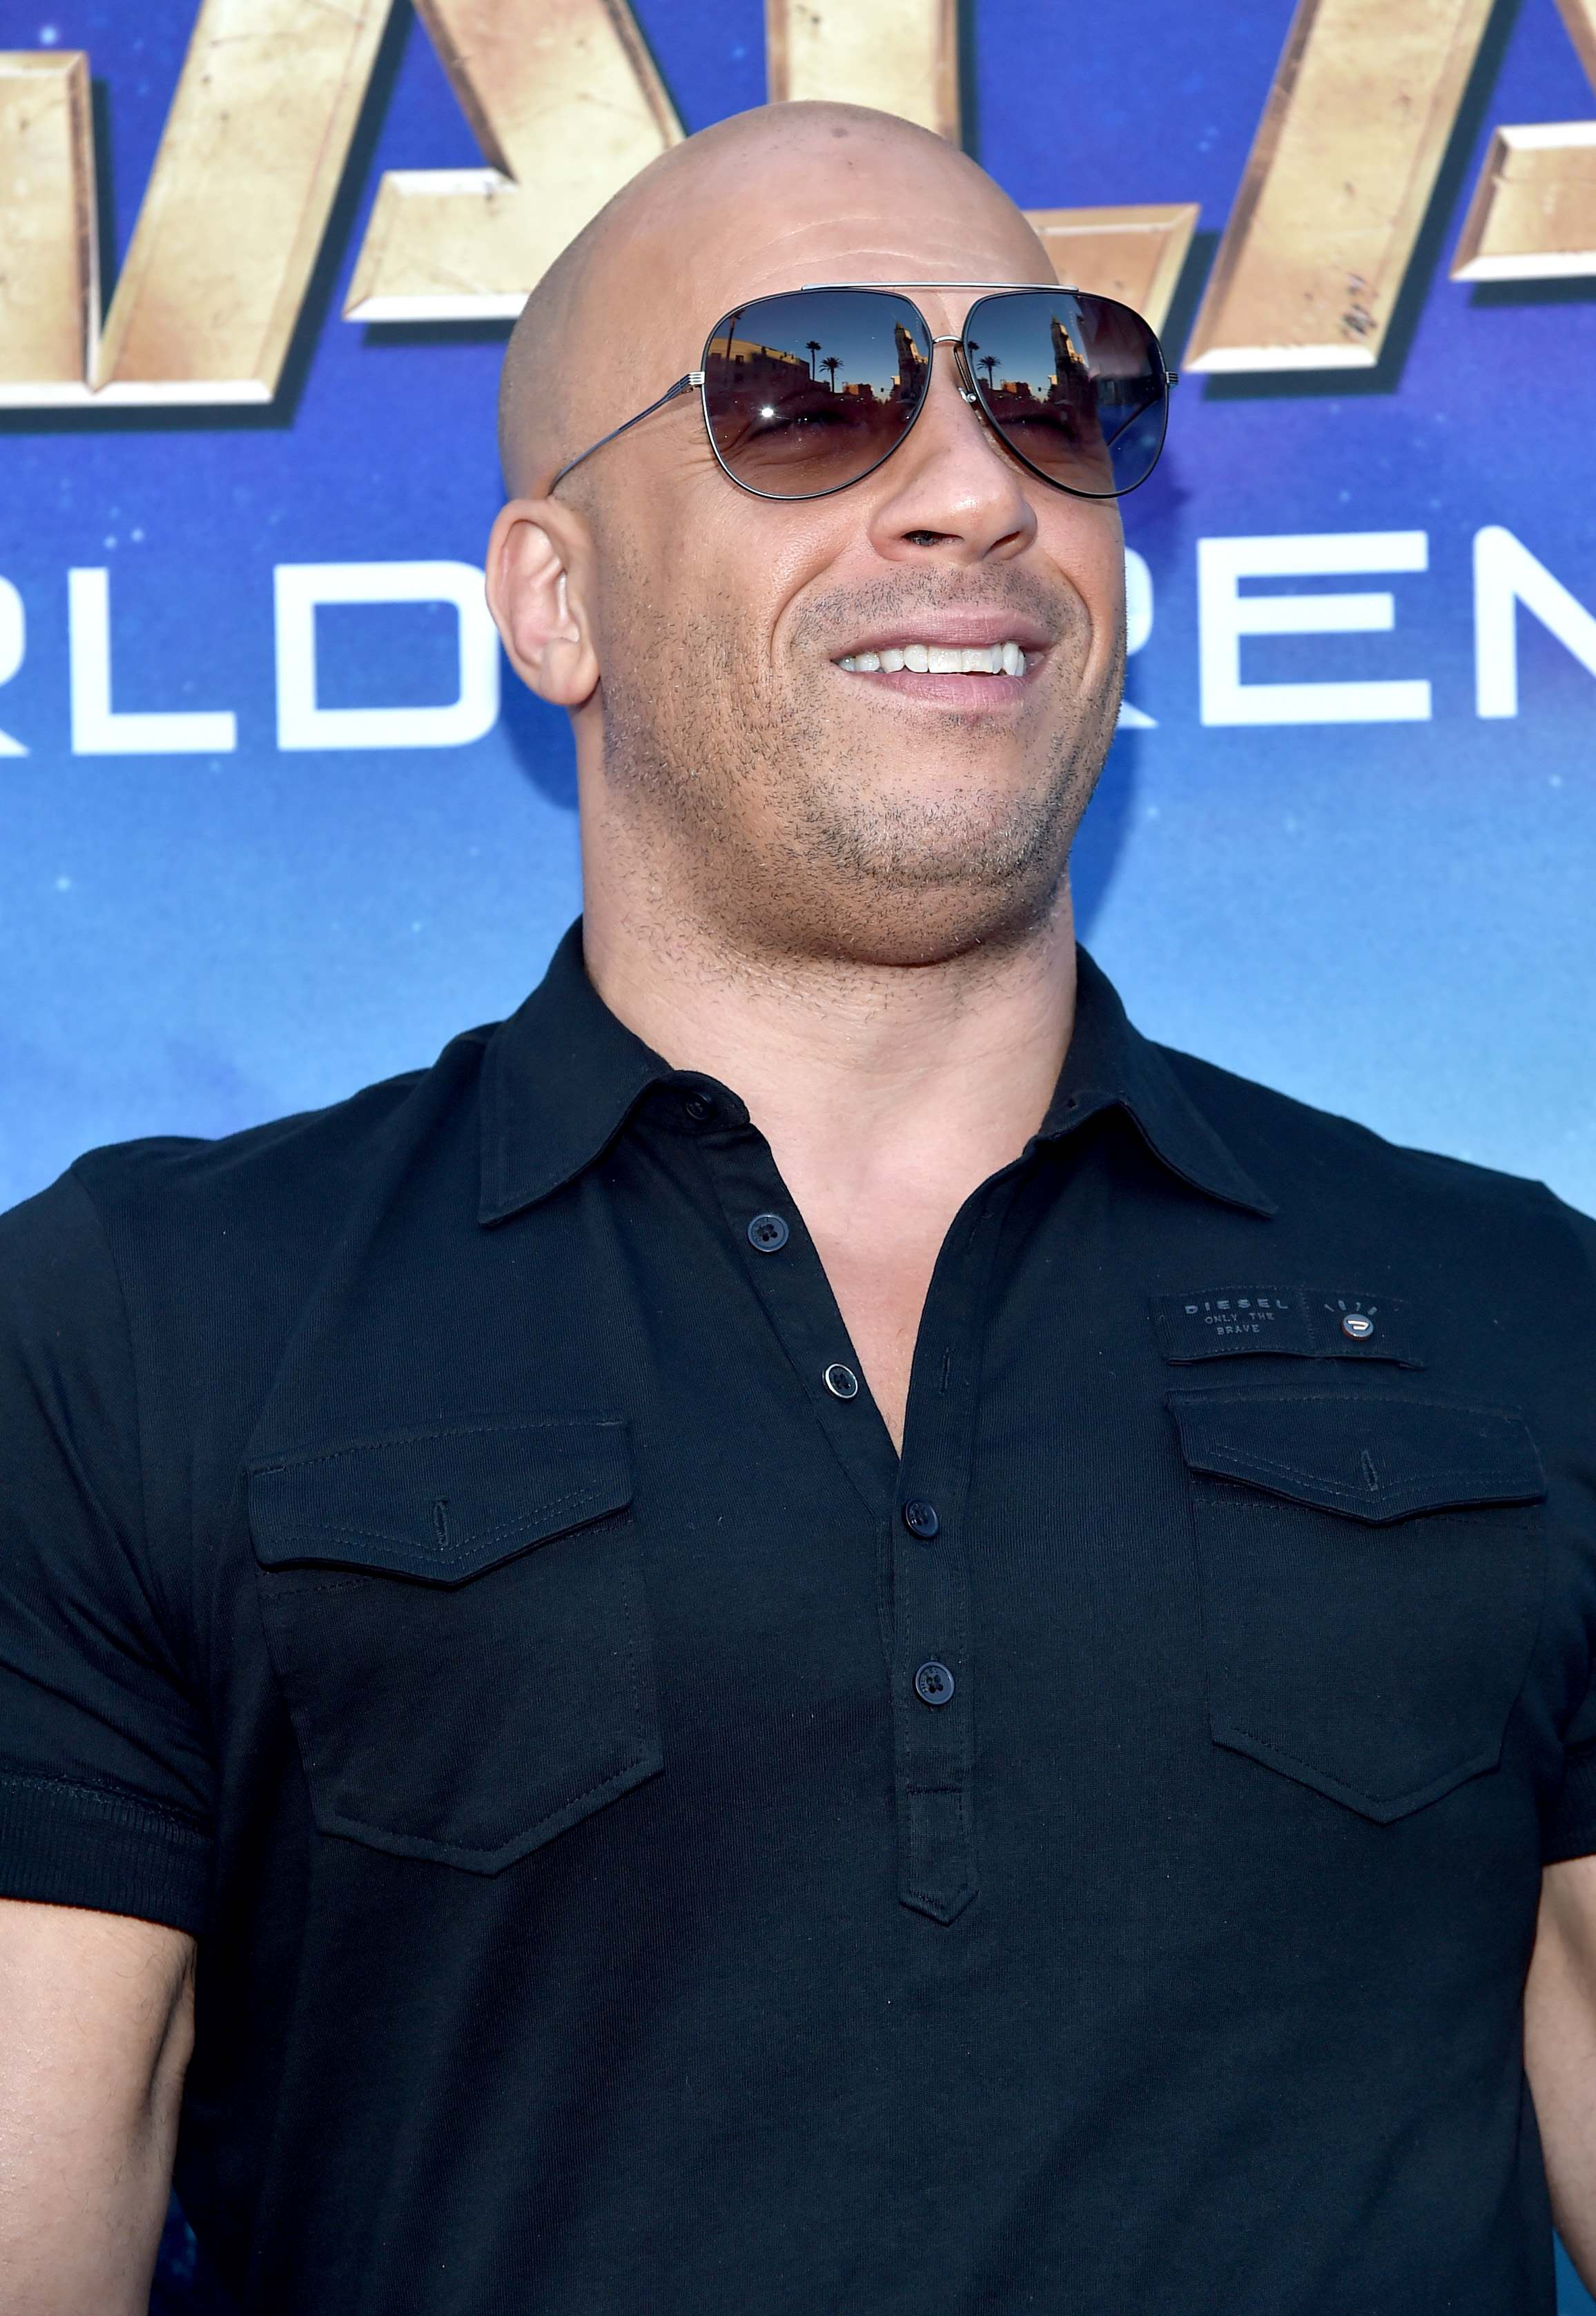 Vin-Diesel-at-Guardians-of-the-Galaxy-premiere-www.scifiempire.net